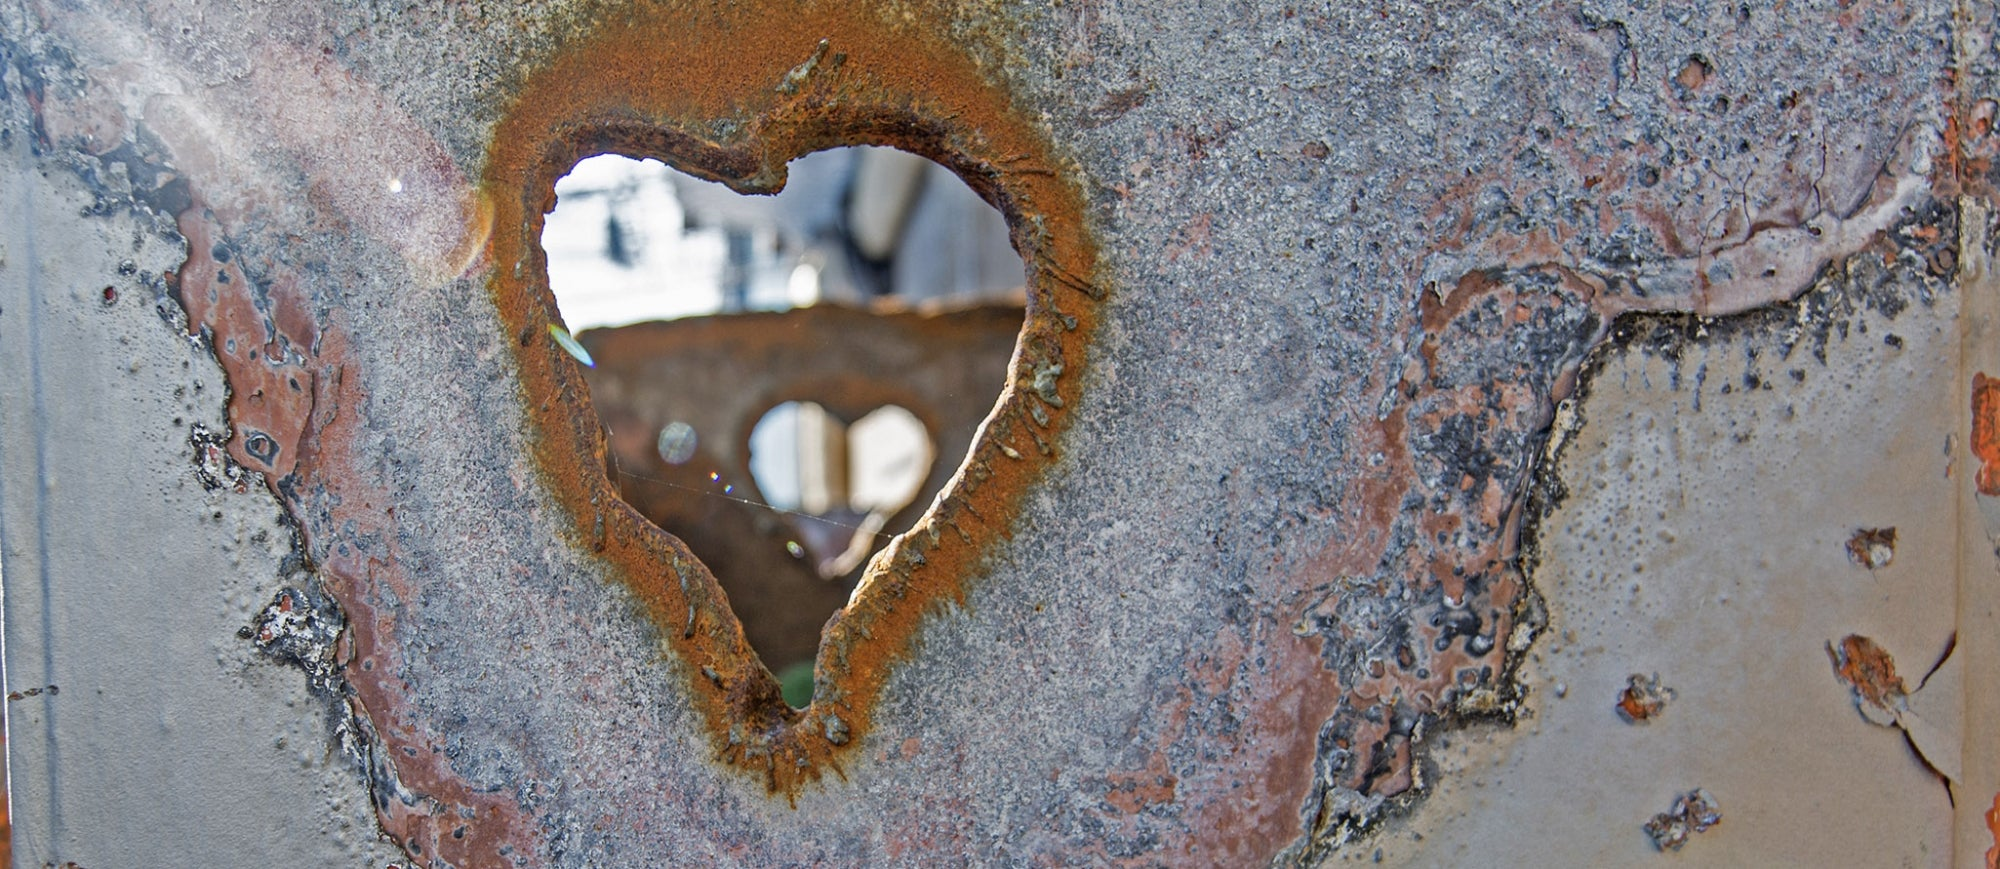 heart-shaped hole in a piece of salvaged steel